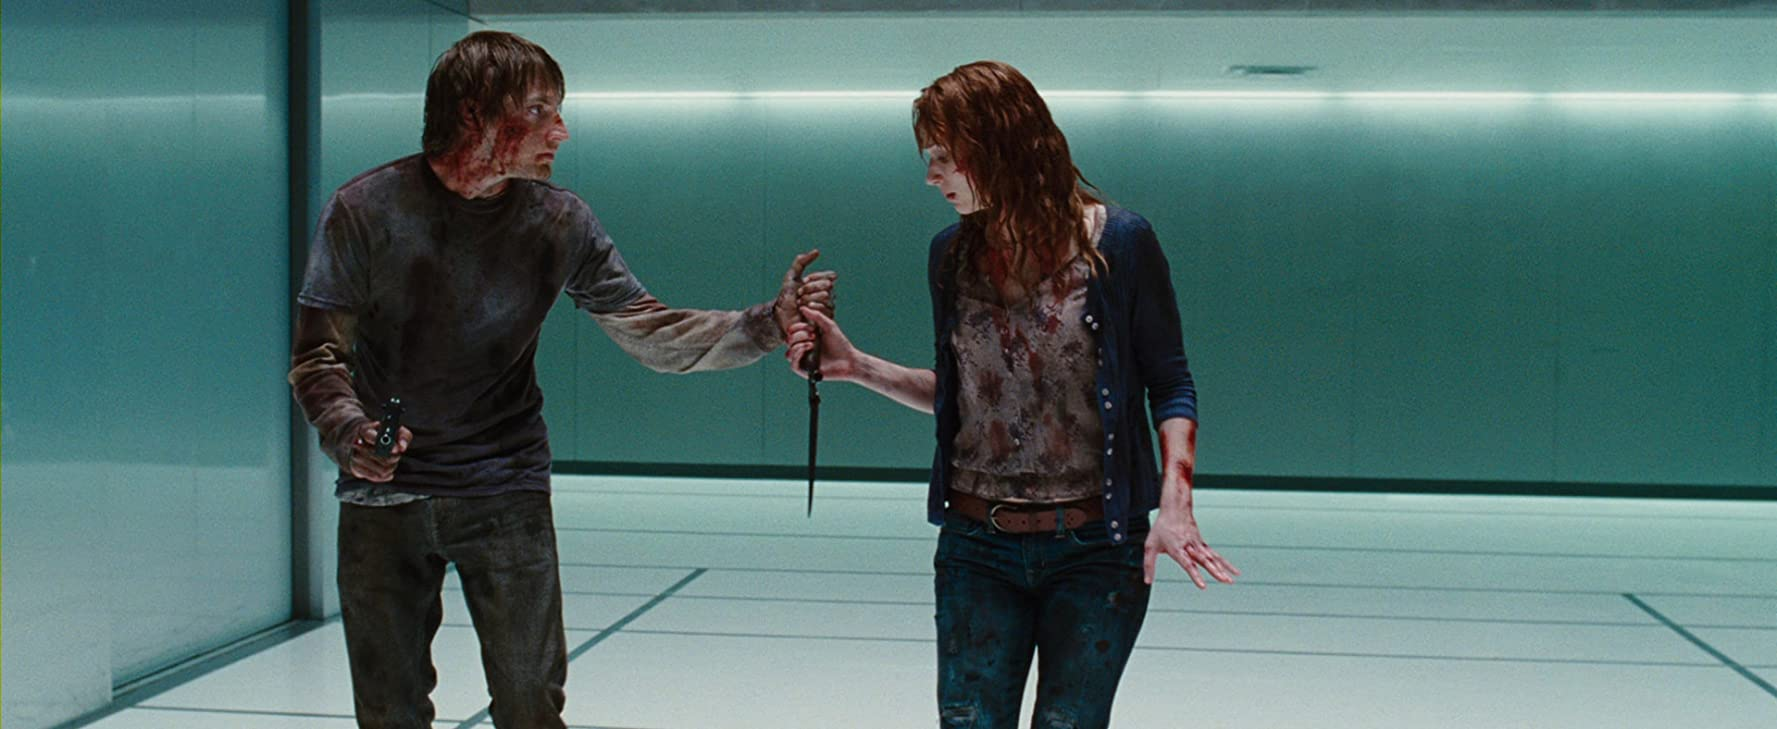 Fran Kranz and Kristen Connolly in The Cabin in the Woods (2011)